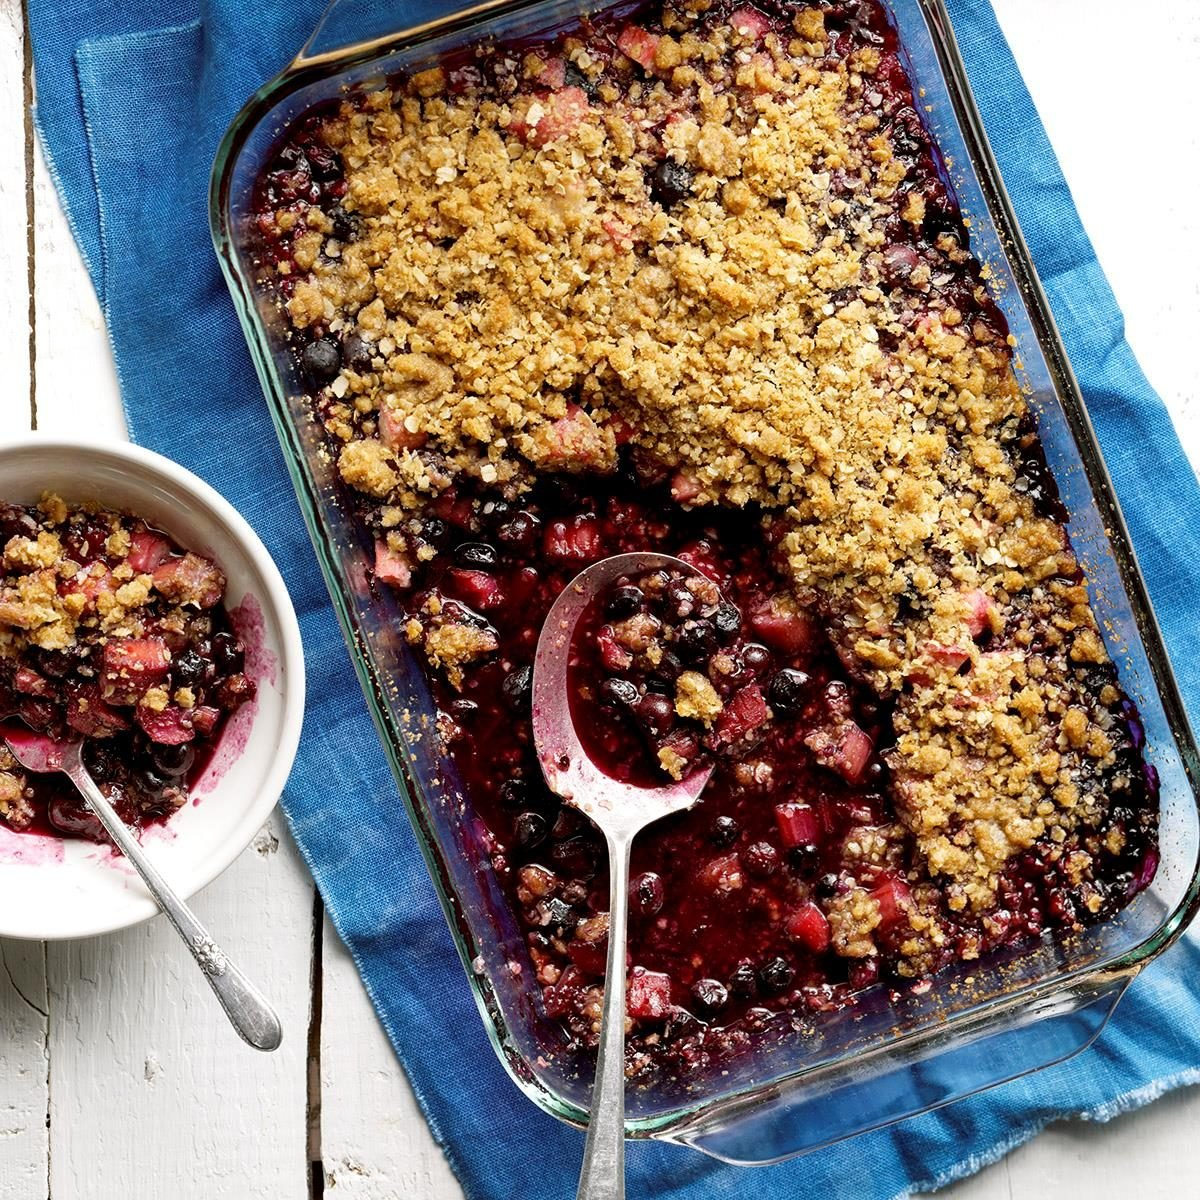 35 Old-Fashioned Blueberry Desserts You Should Have in Your Recipe Box